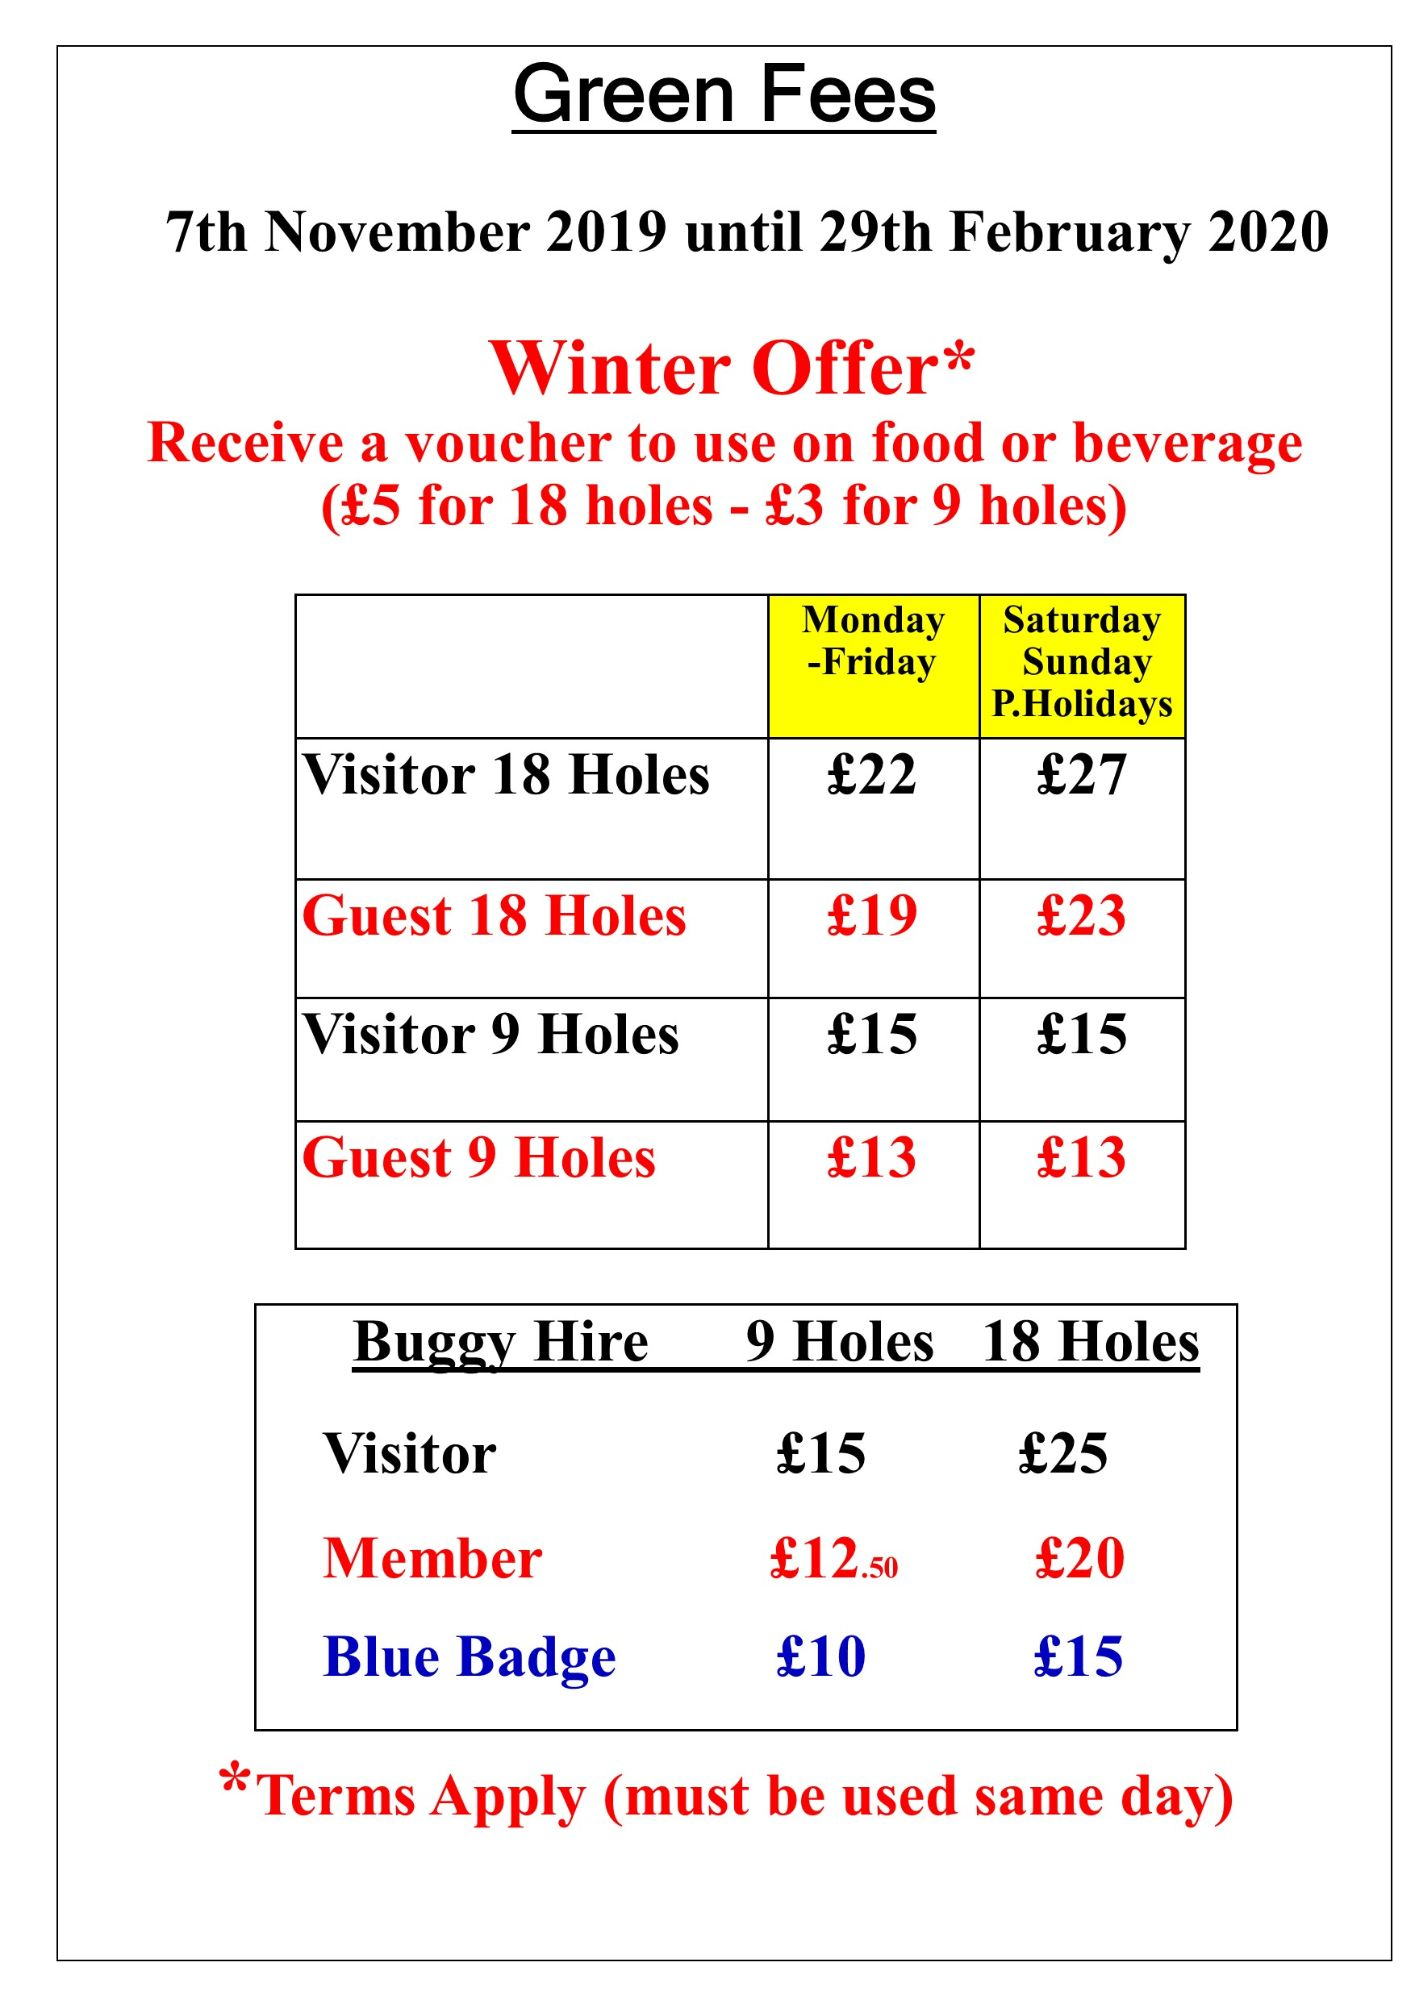 Green Fees Winter 2019